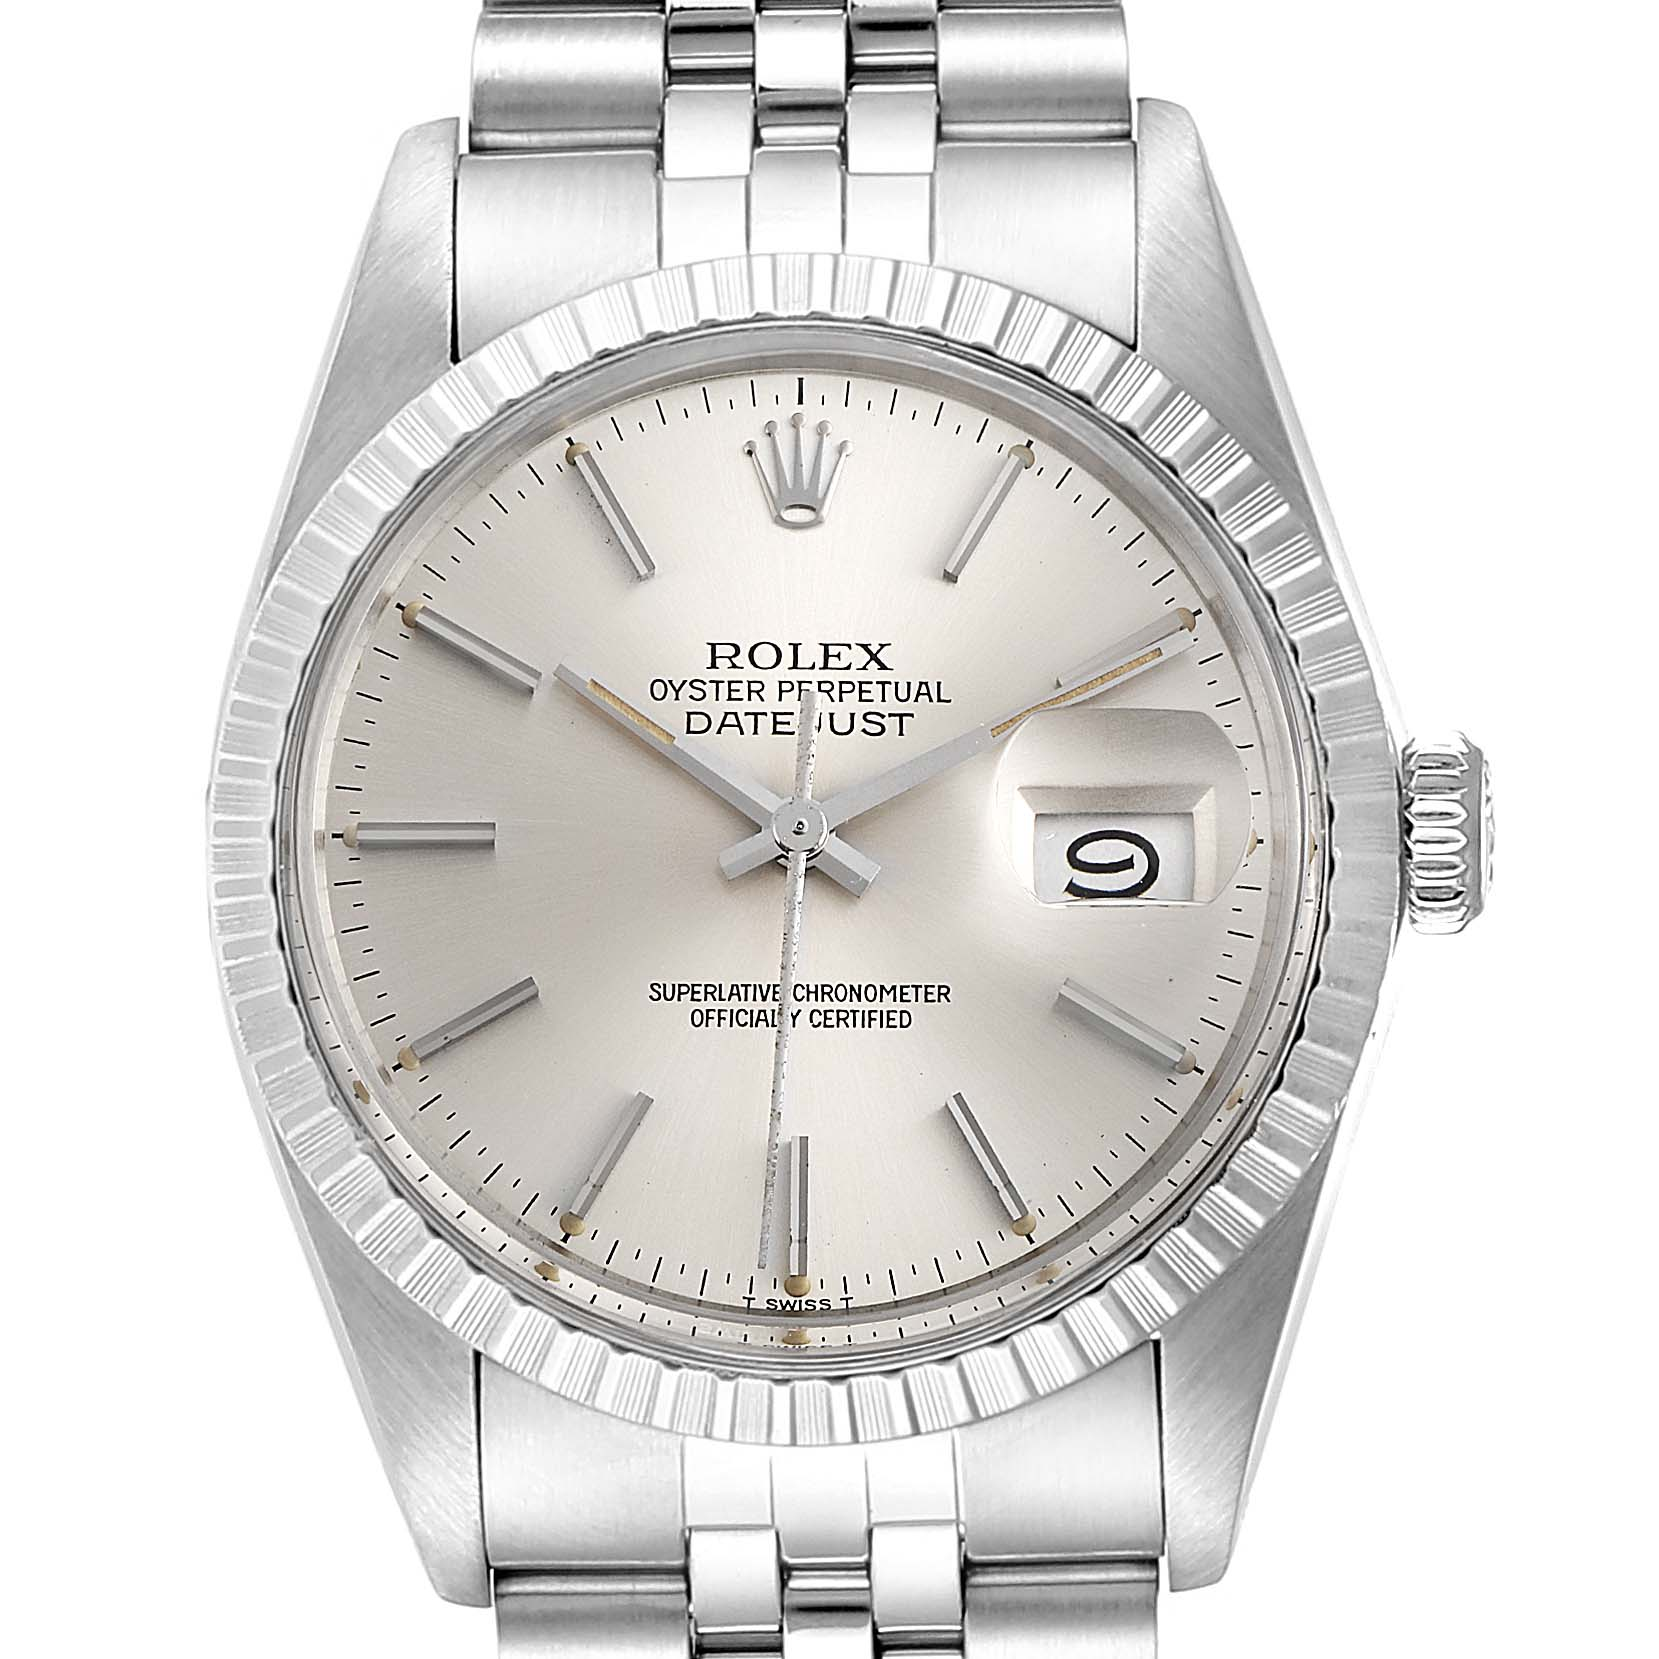 Photo of Rolex Datejust Silver Dial Vintage Steel Mens Watch 16030 Papers